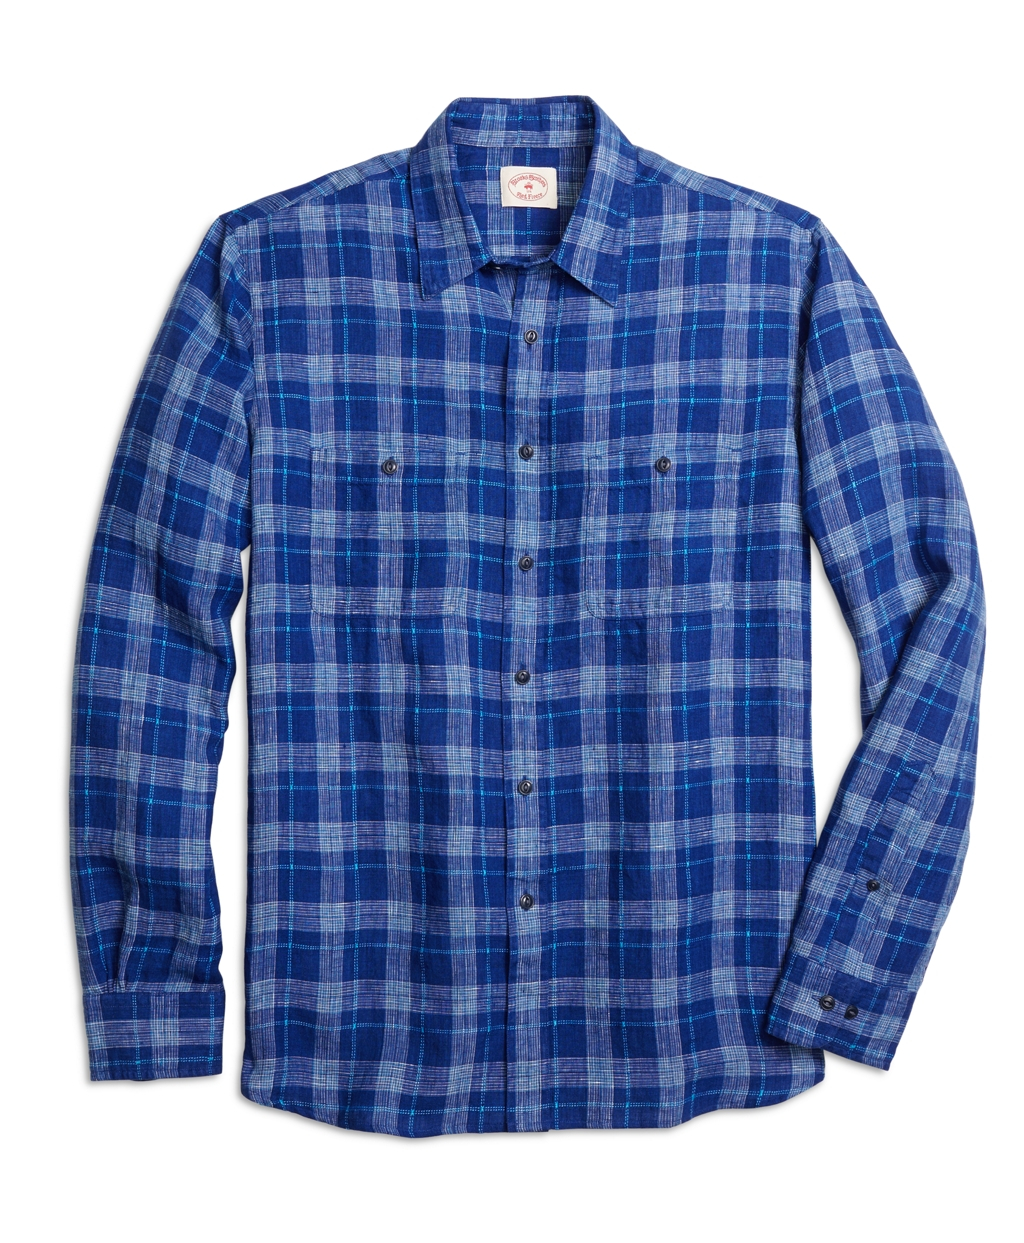 Brooks brothers non iron slim fit navy check sport shirt for Brooks brothers non iron shirts review